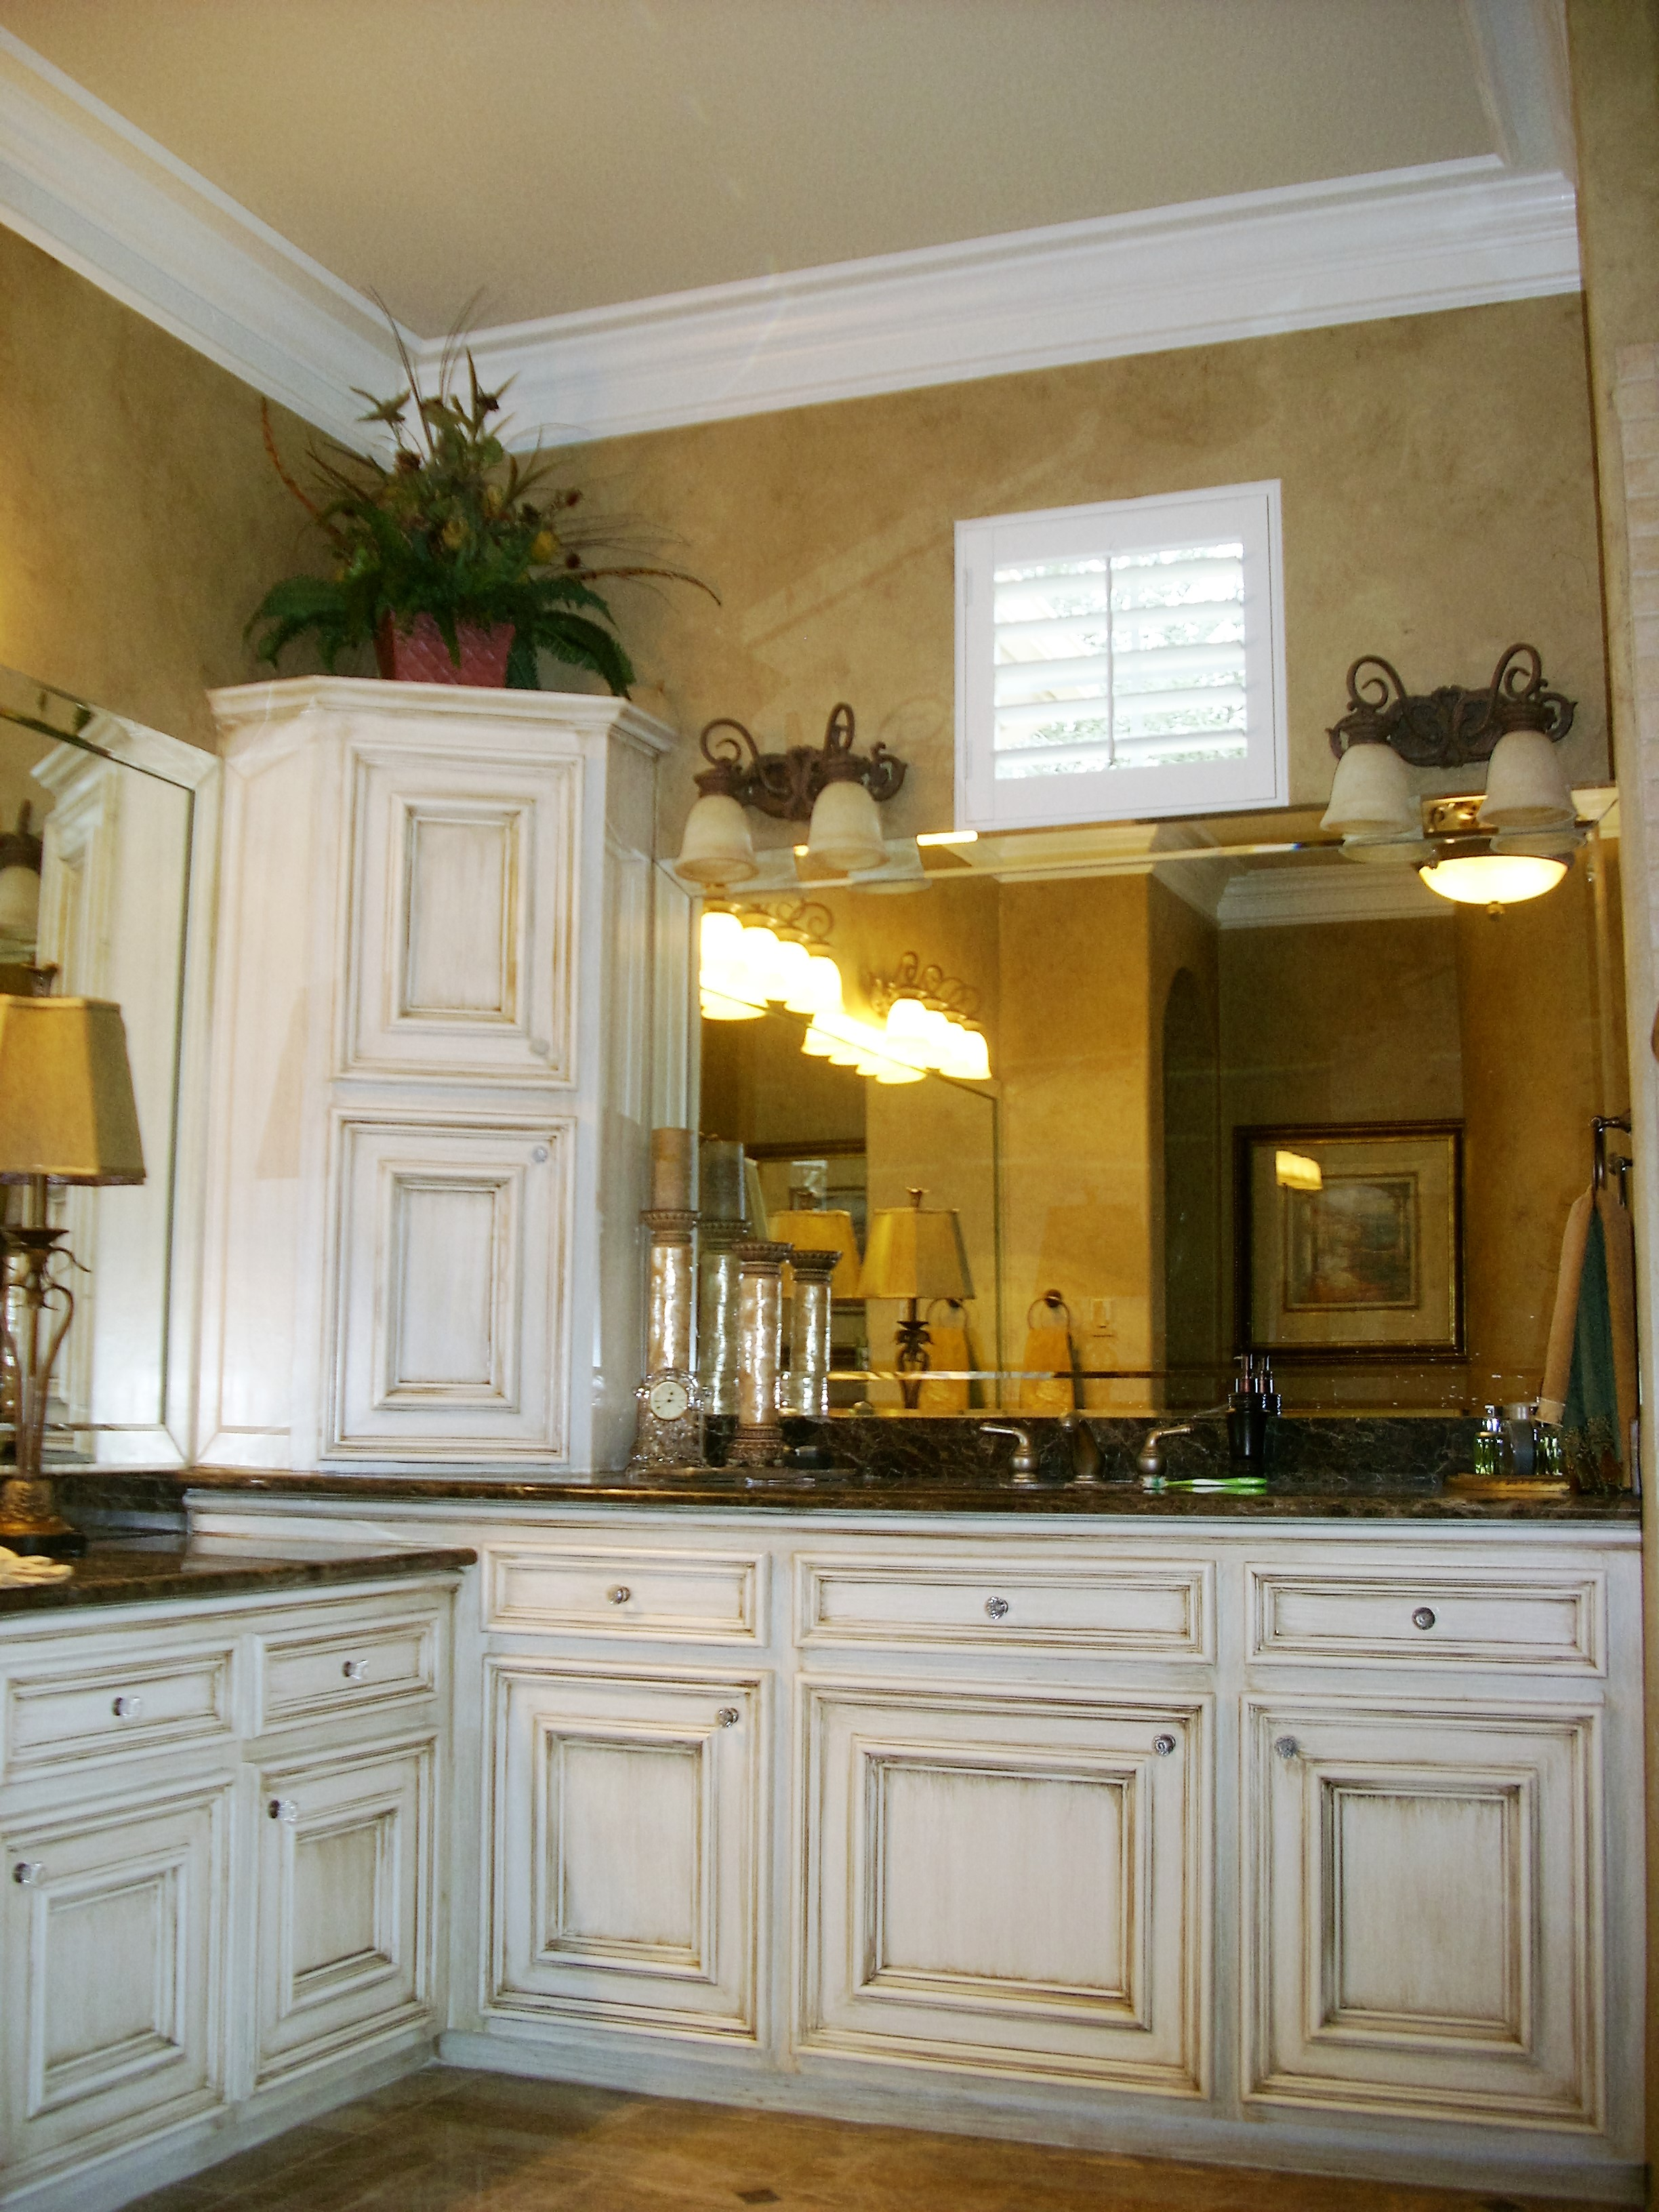 hand painted kitchen cabinets custom painted kitchen cabinets houston 832 257 9285 4126